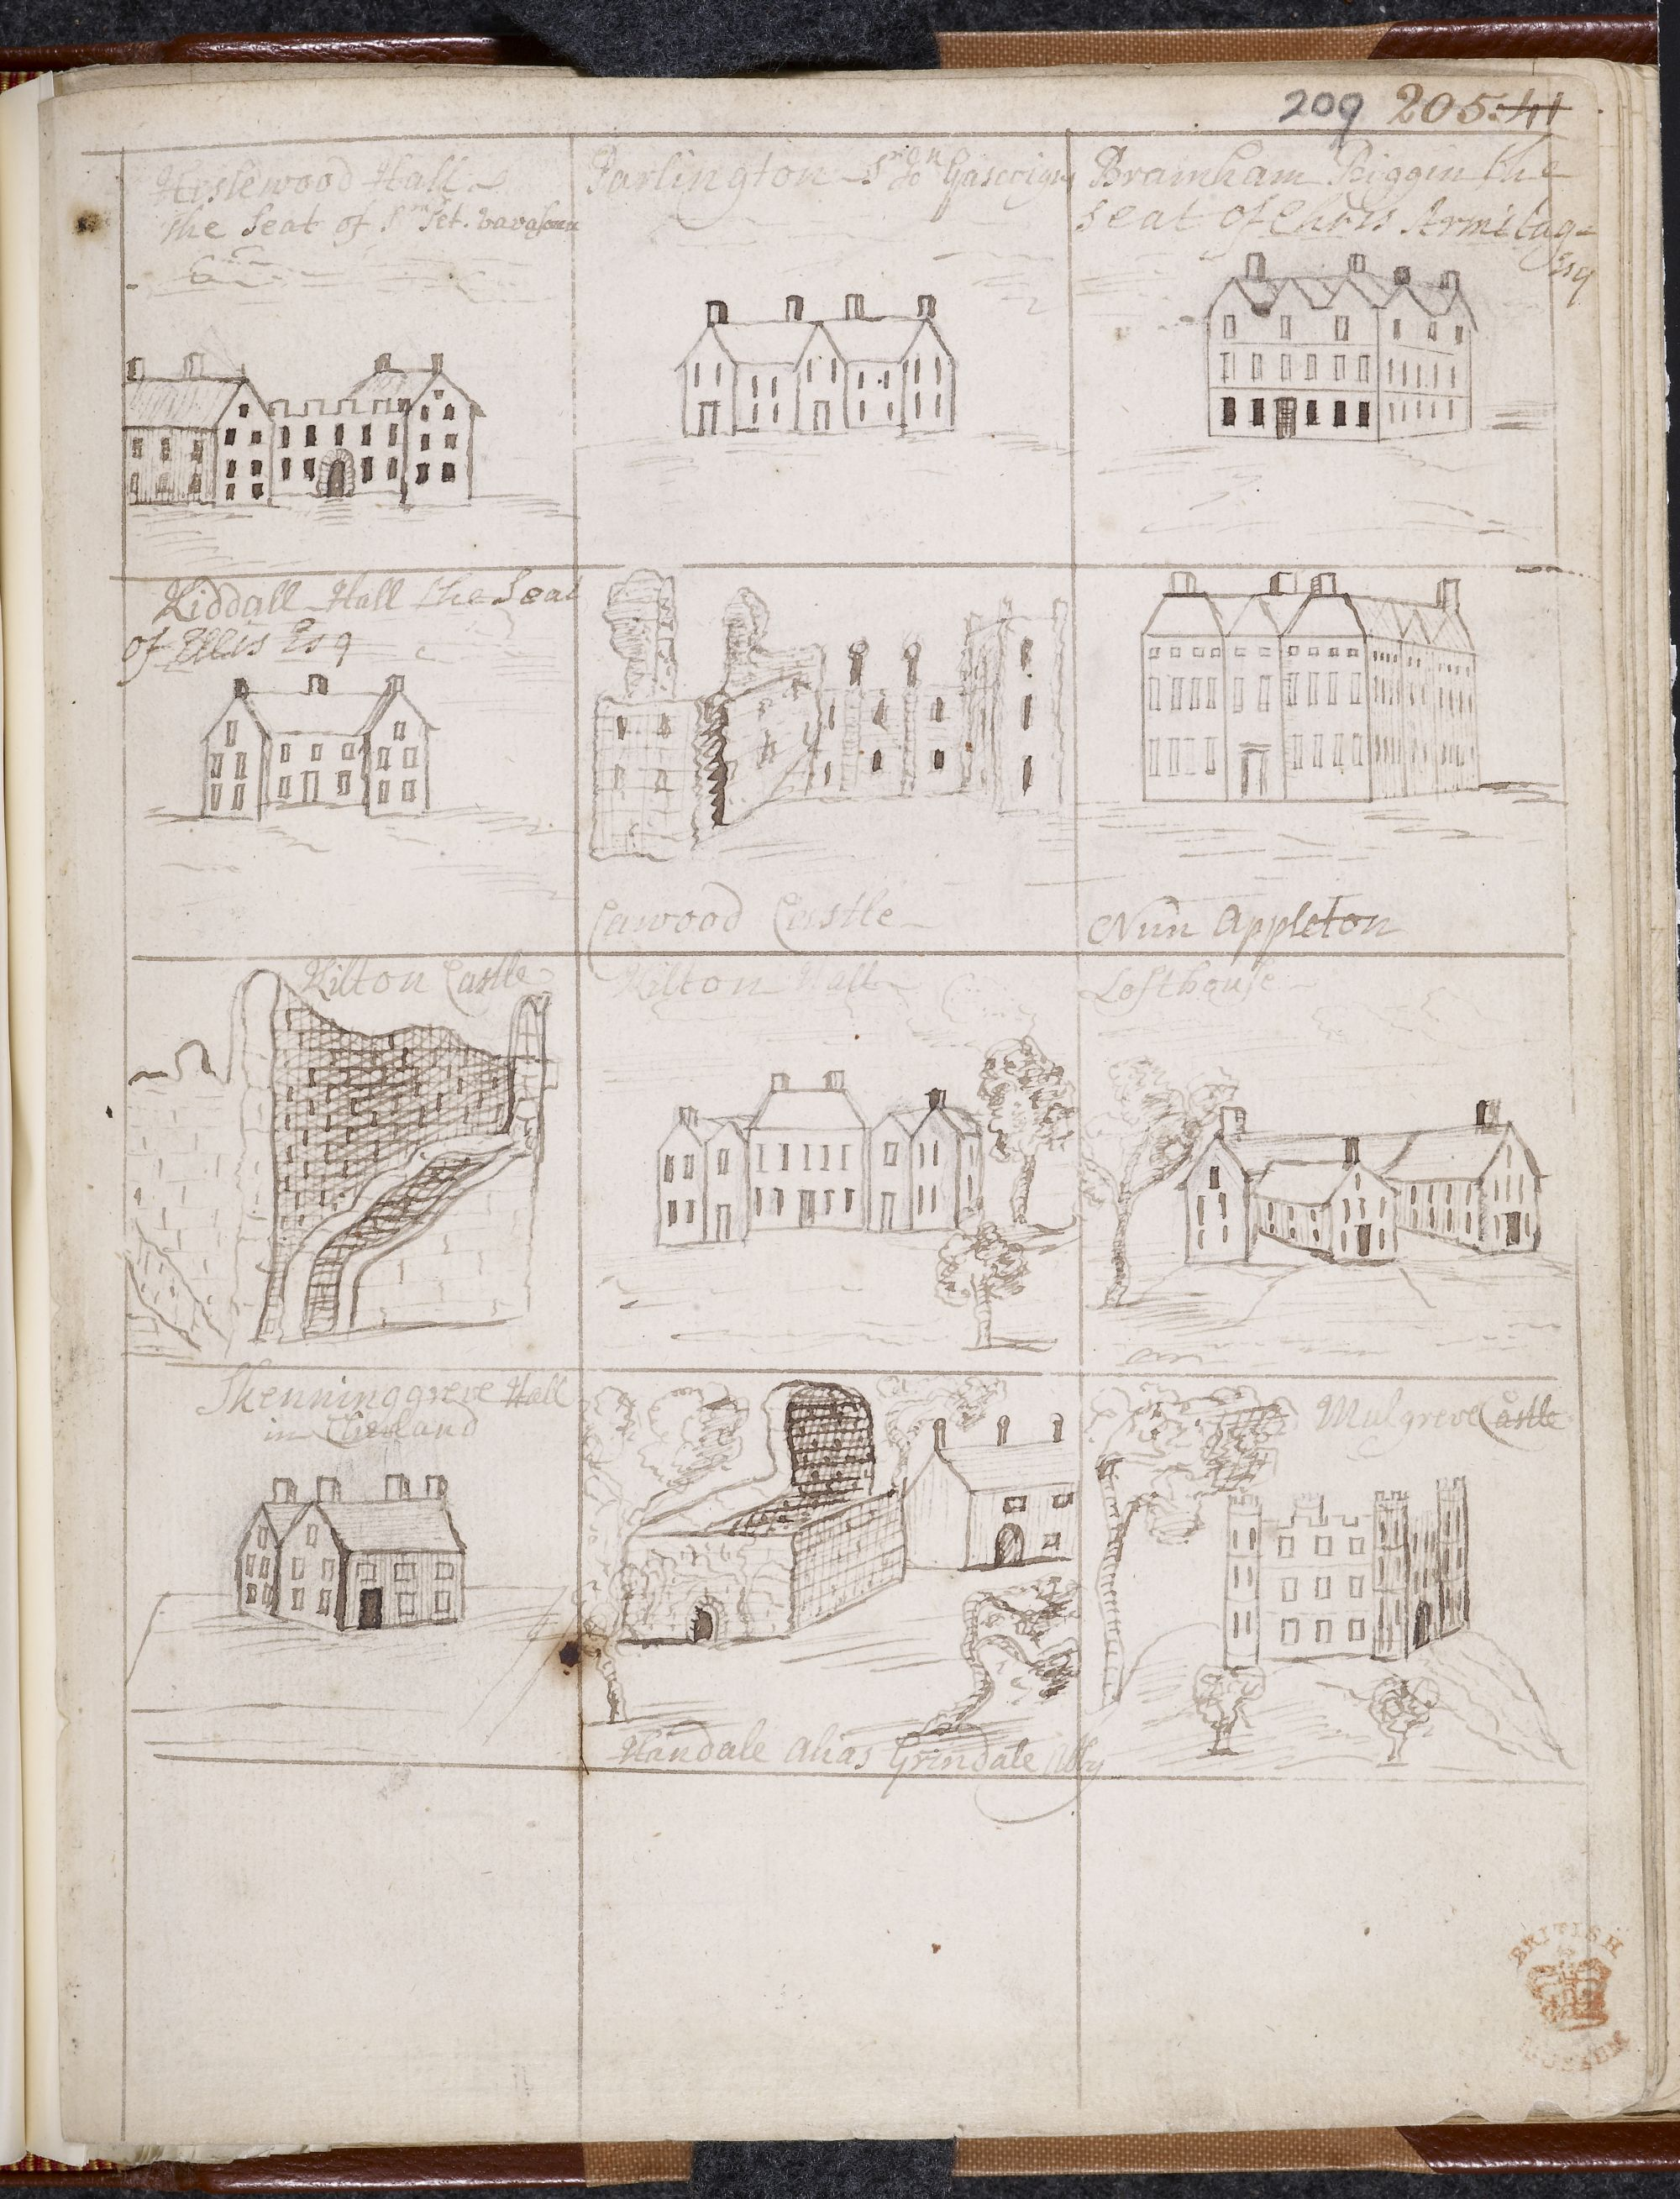 Samuel Buck (1696-1779), Drawings from the Yorkshire Sketchbook in Another volume of Mr. Warburton's collections for Yorkshire, containing a great many views of towns, ruins, gentlemen's seats, &c. chiefly pen and ink sketches, several of which are very neatly executed, 1719-20, pen and brown ink, Lansdowne MS 914, f.209